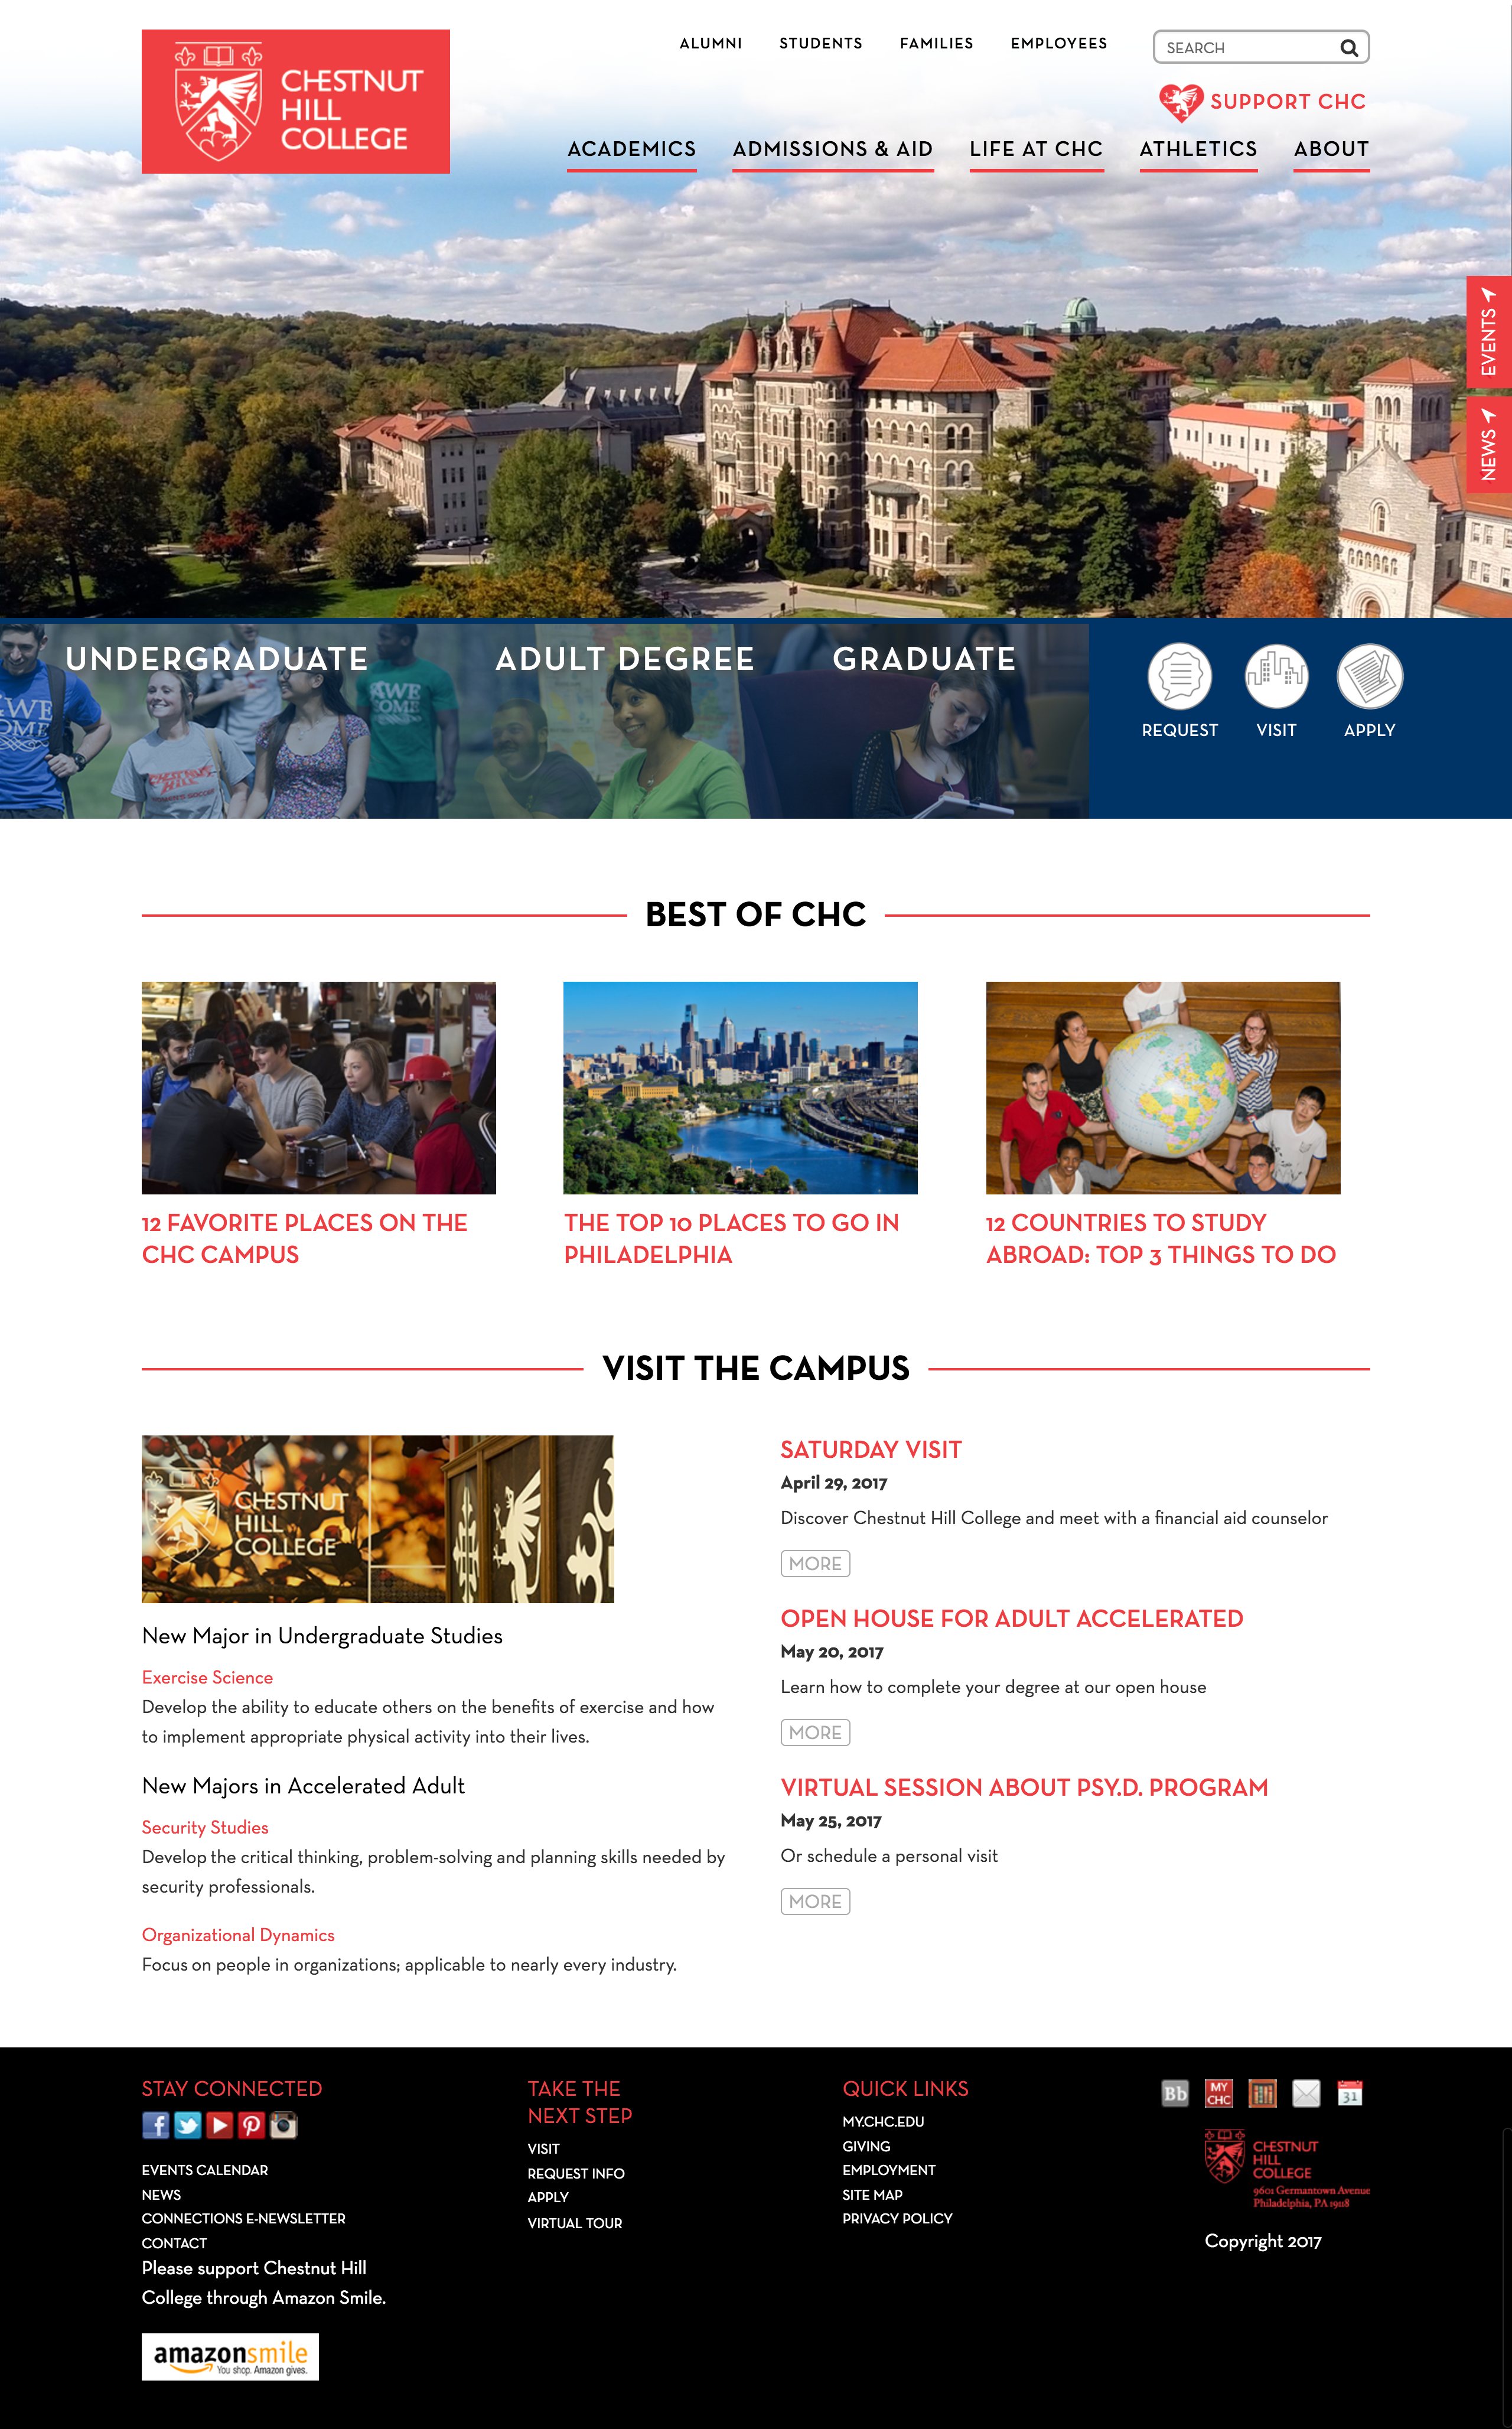 Chestnut Hill College homepage